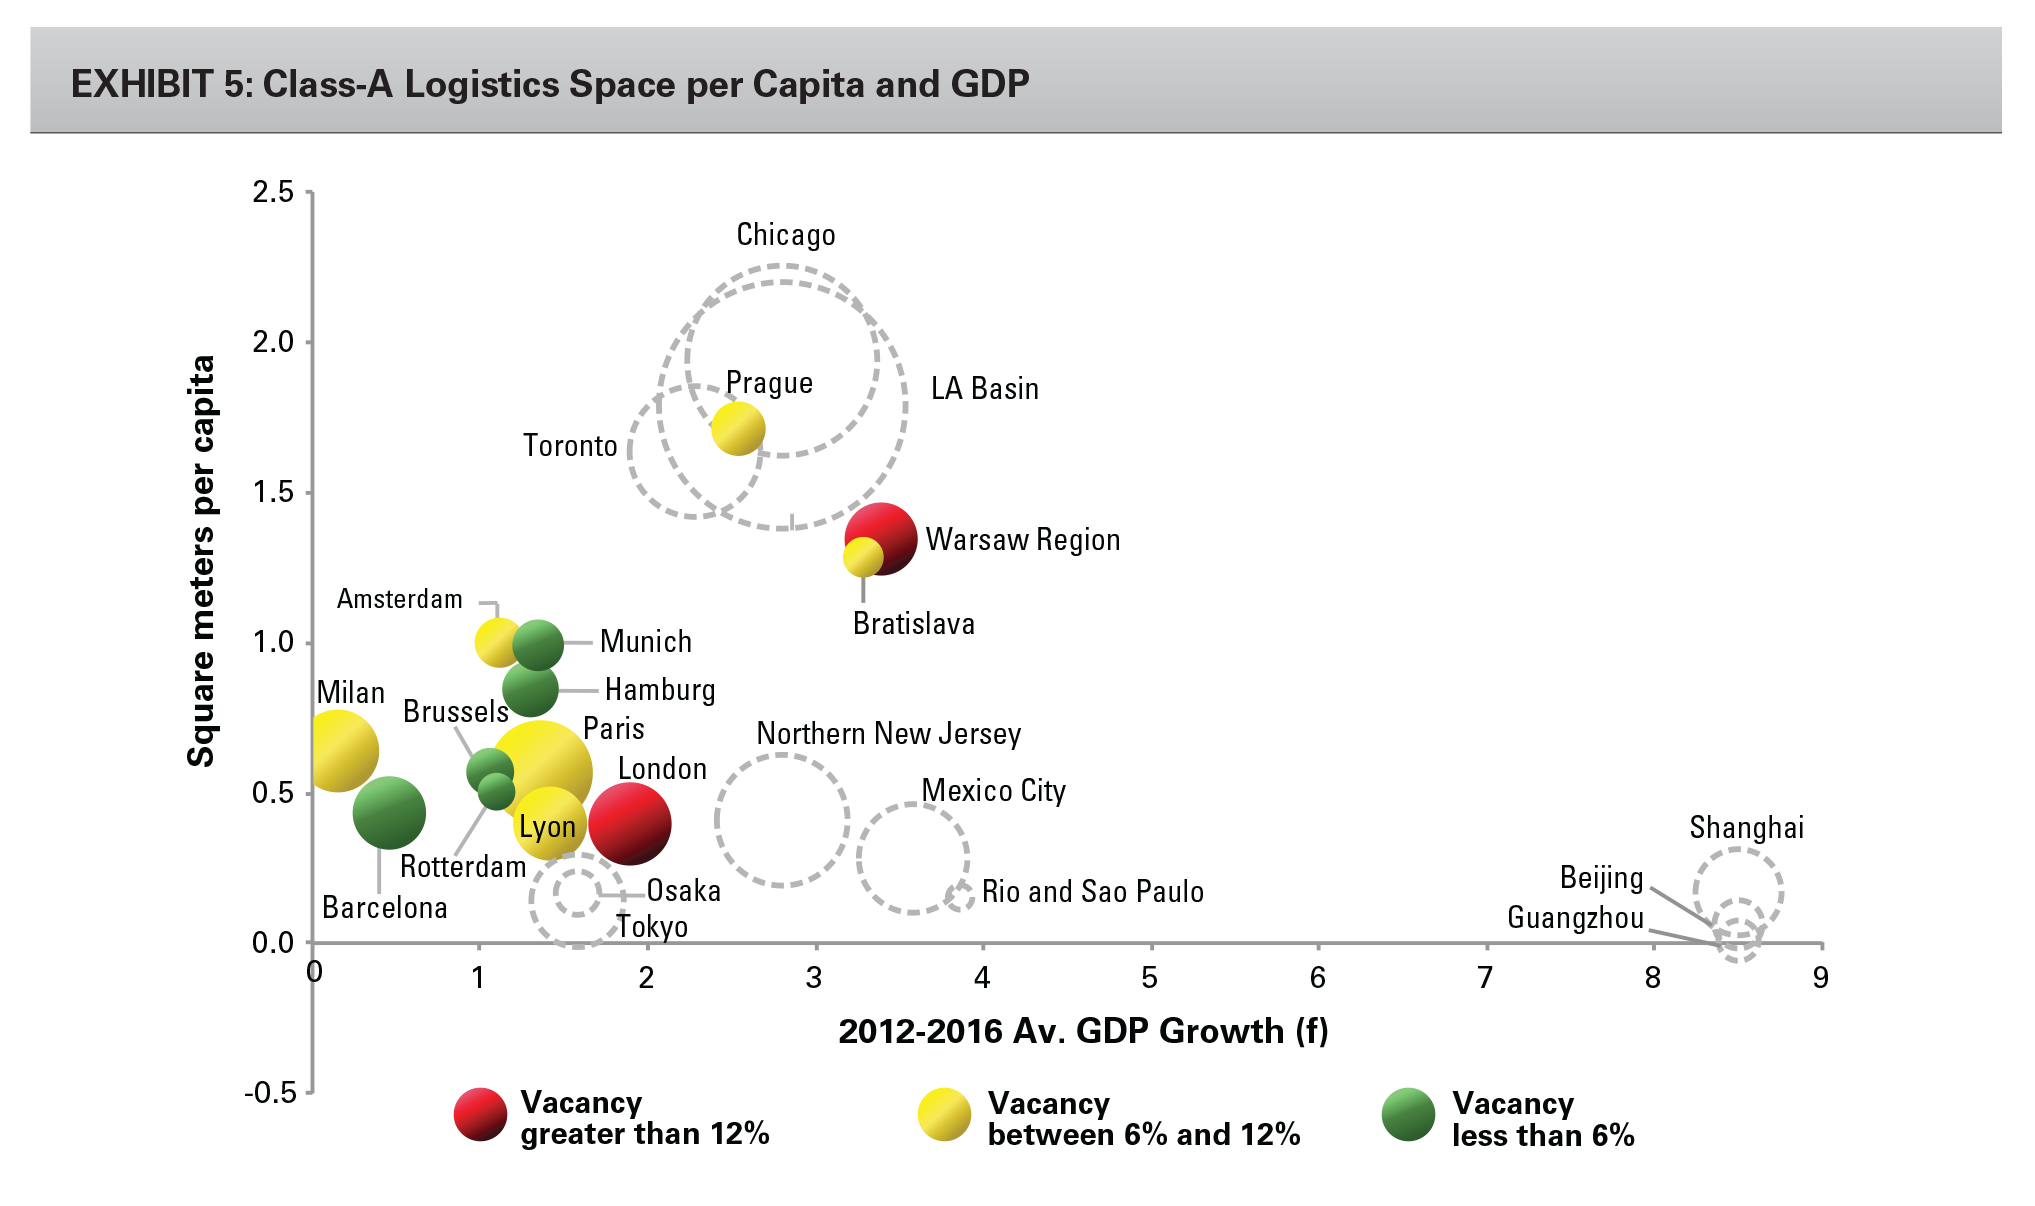 EXHIBIT 5: Class-A Logistics Space per Capita and GDP